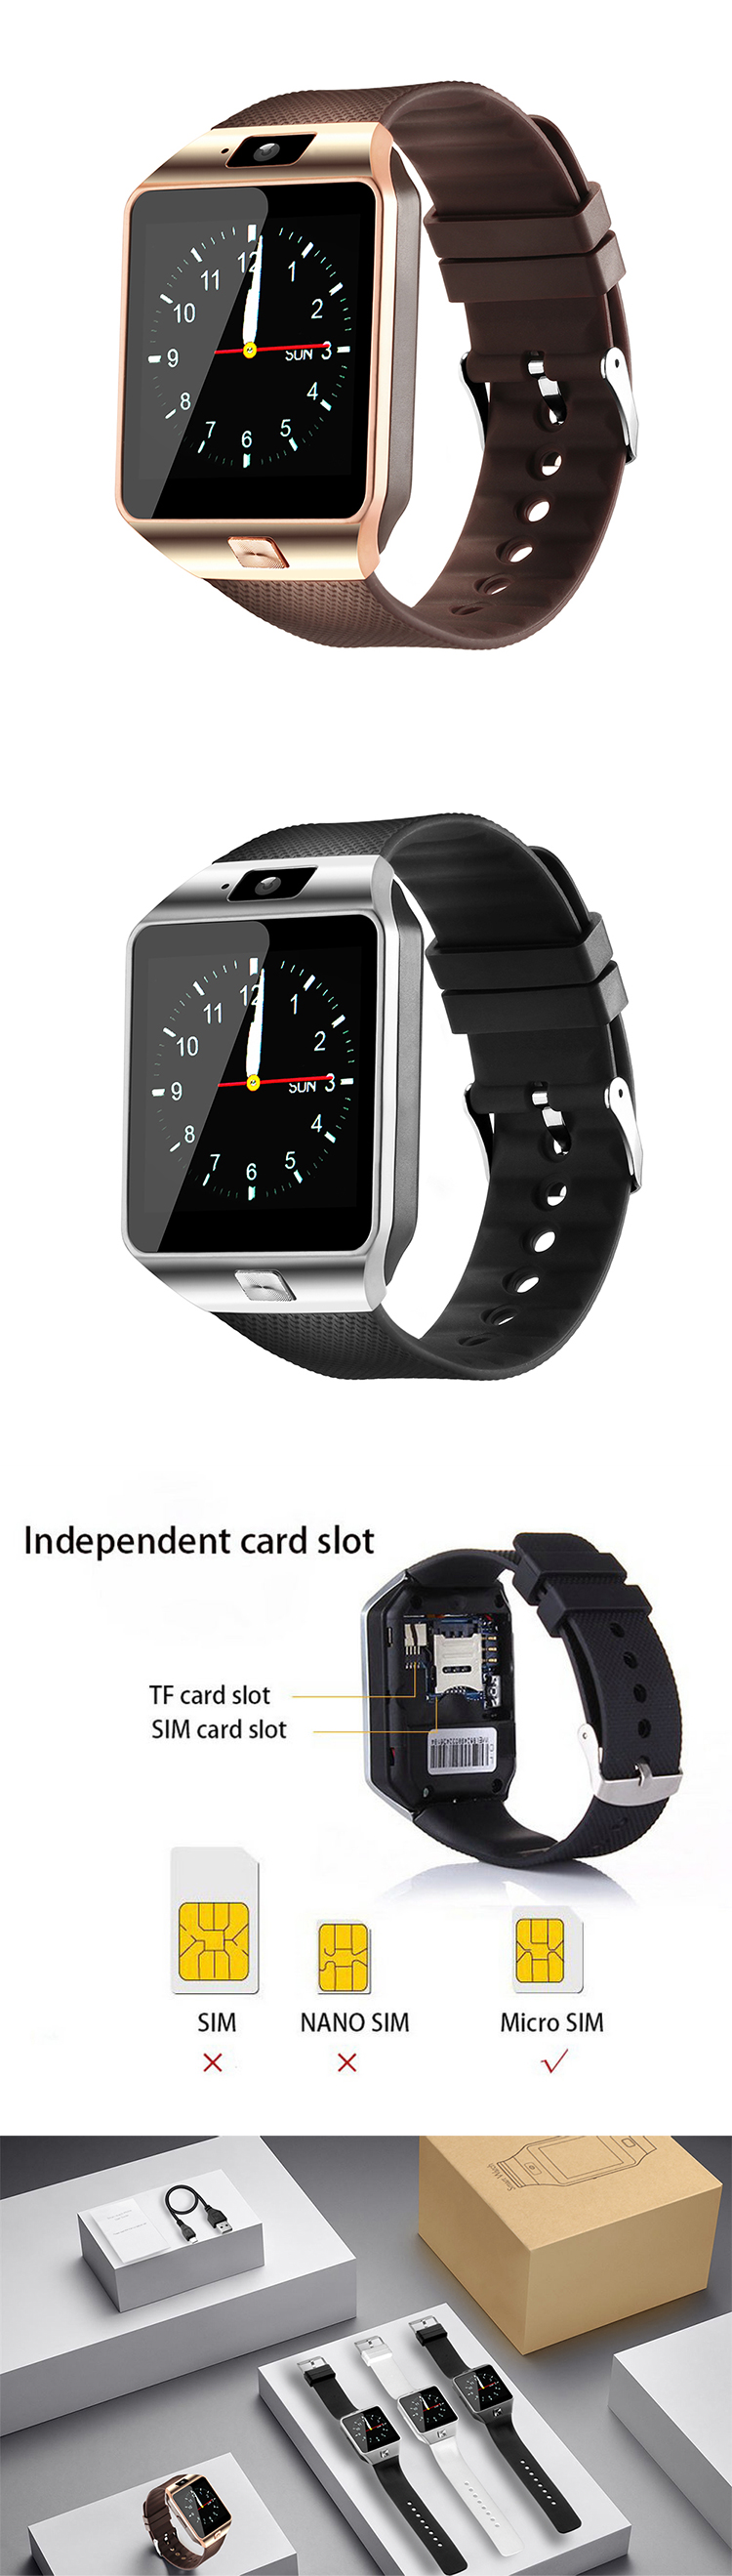 4$ SIM Card U8 GT08 / A1 / Q18 / Q50 / DZ09 smart watch phone for Android IOS with Camera WristWatch Smartwatch